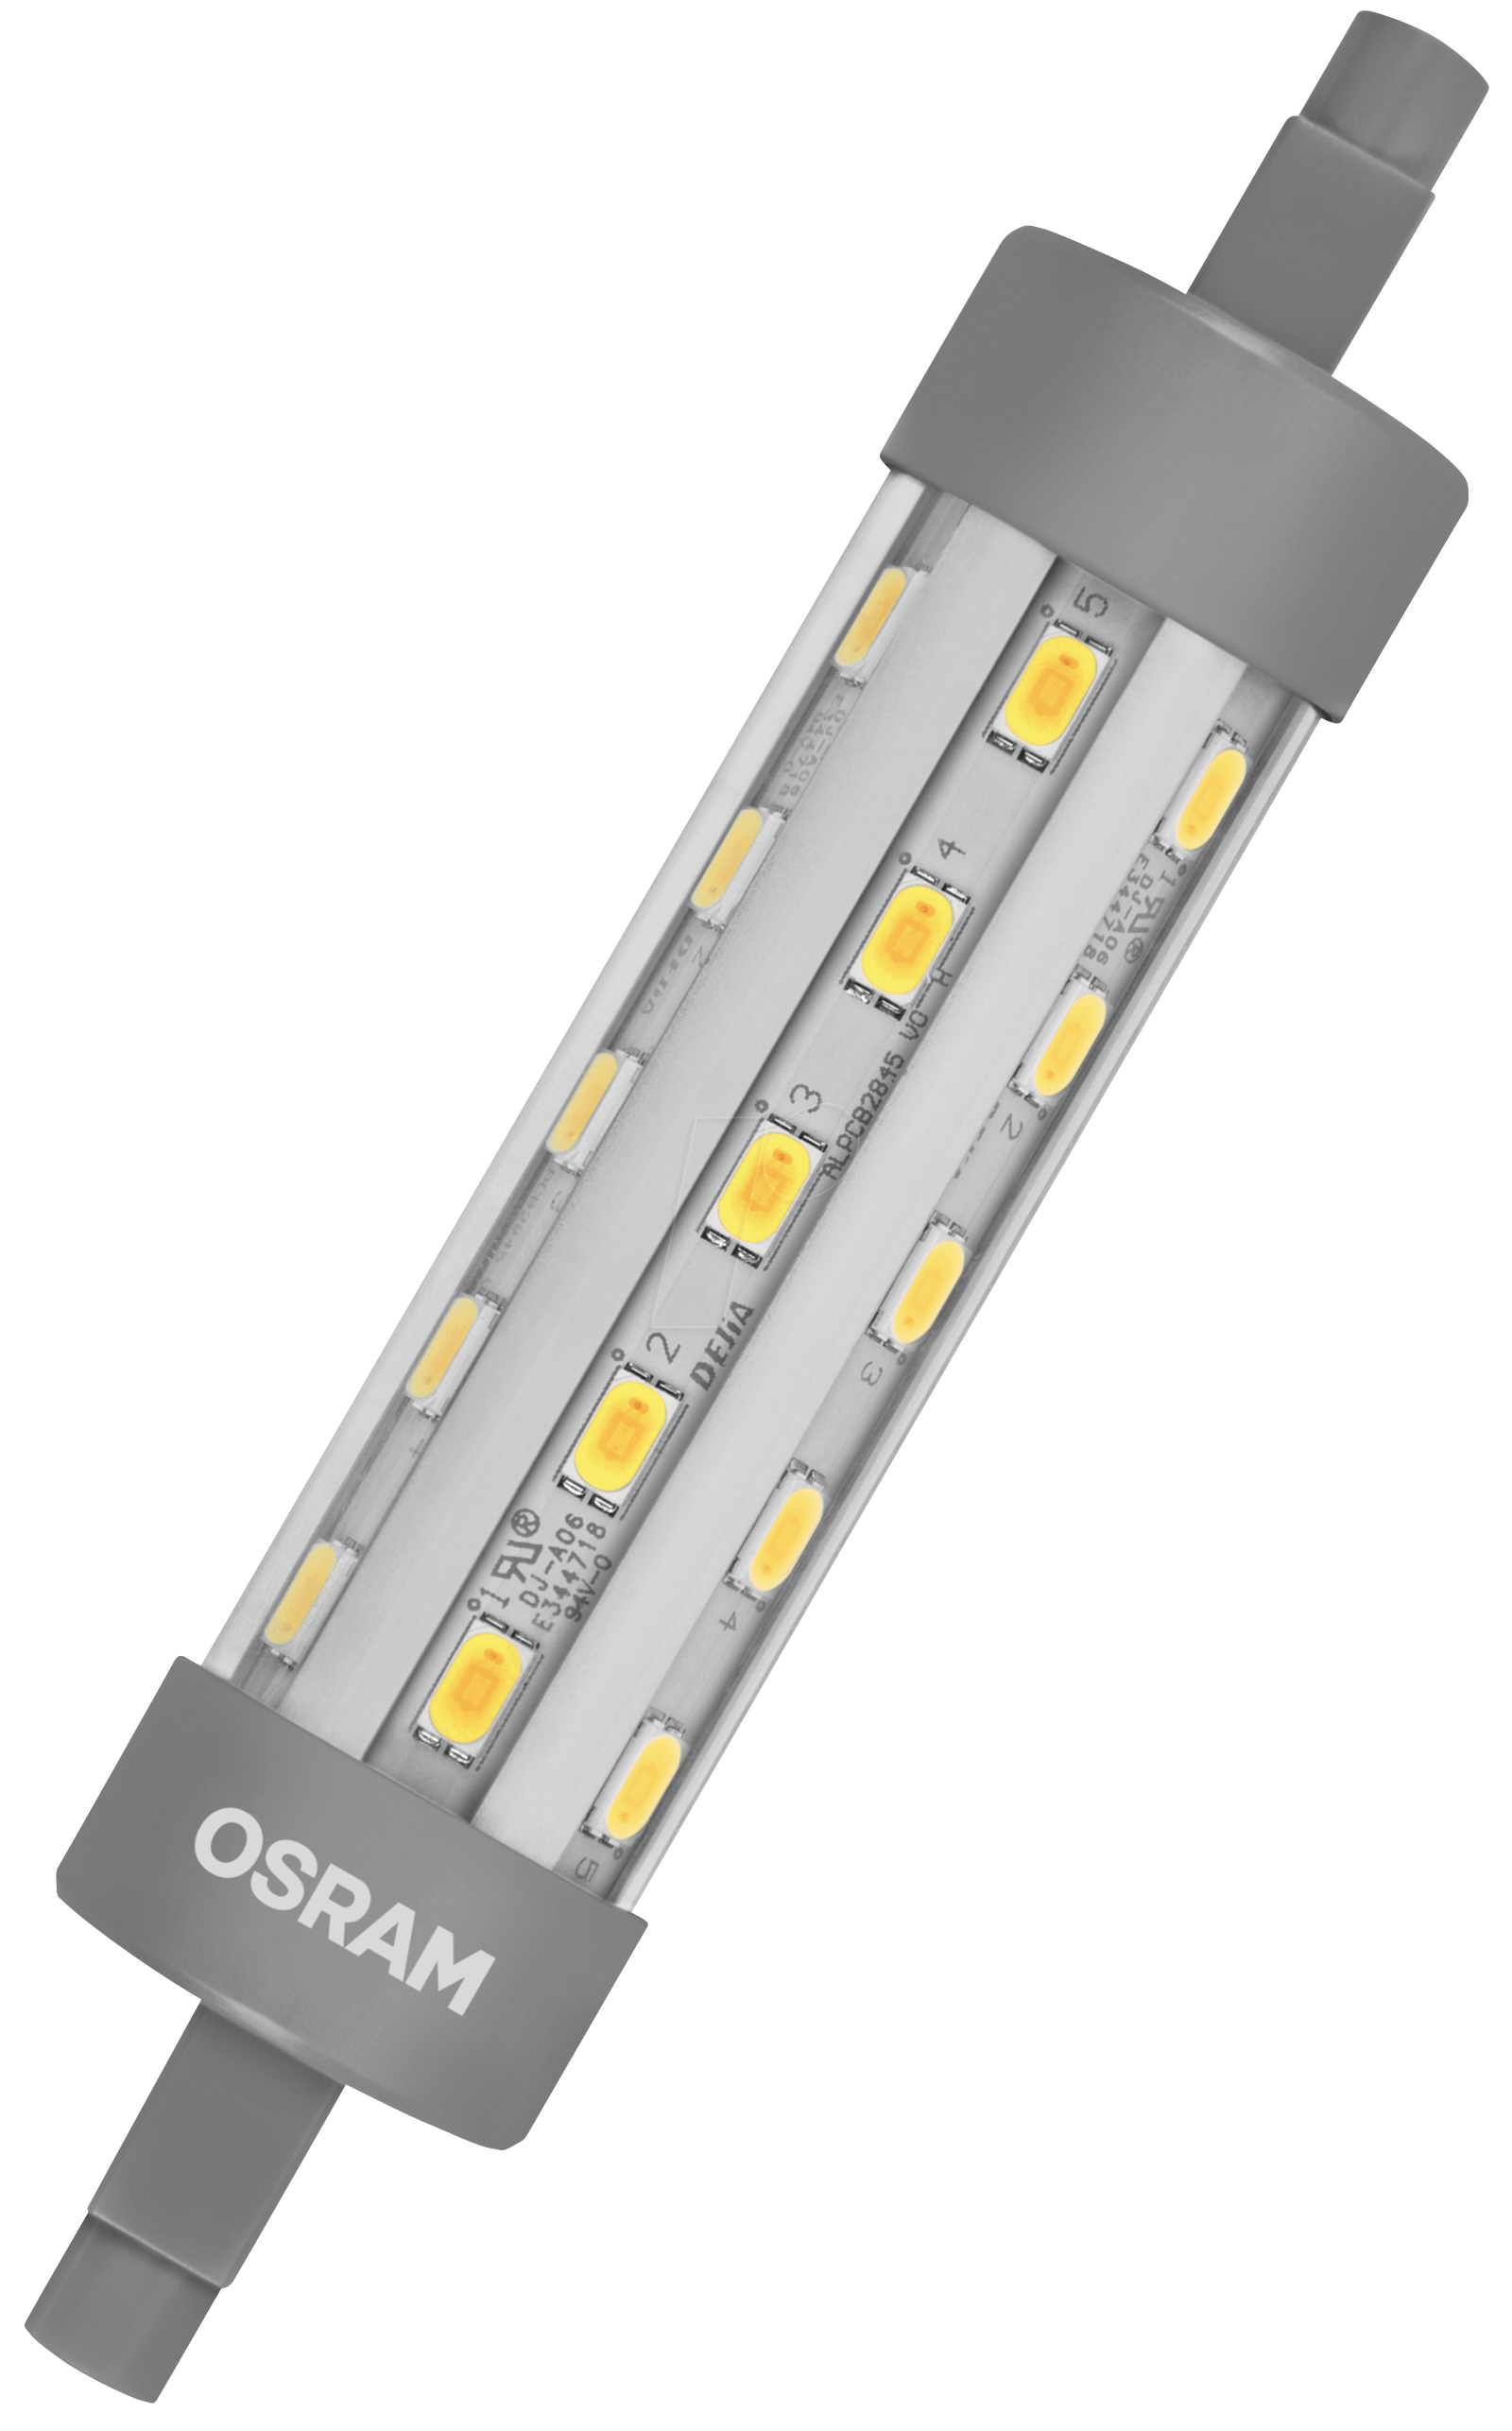 Osr 899961258 osram led star line 60 6 5 w r7s at for Led r7s 78mm osram